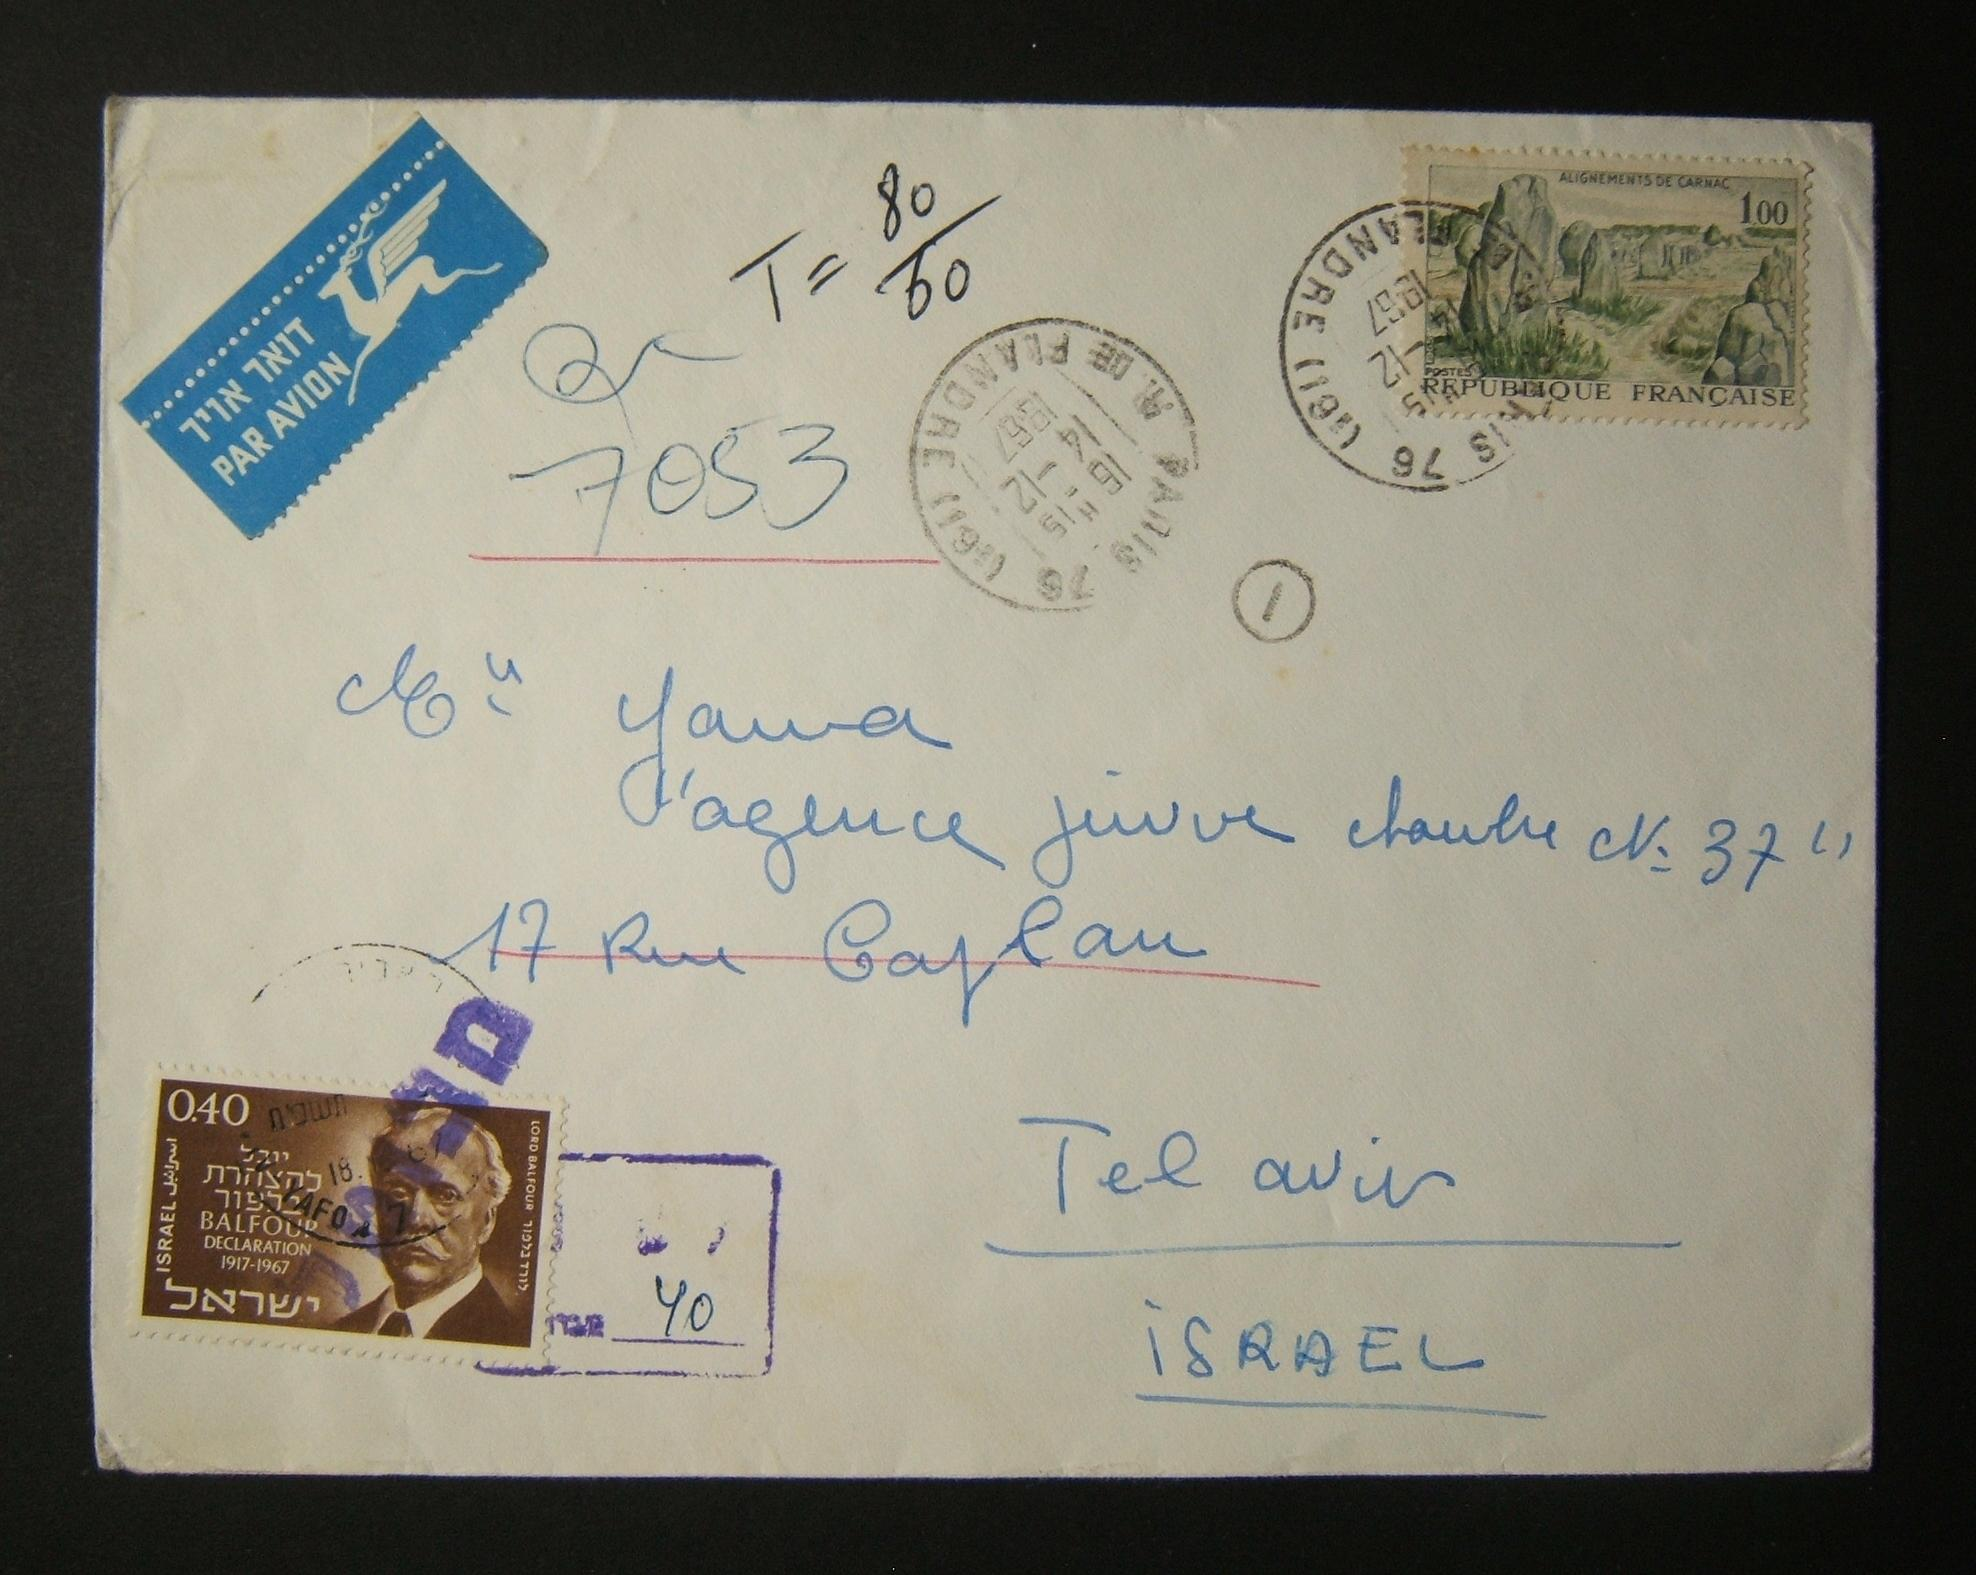 1967 incoming French re-routed postage due mail: 14-12-1967 local PARIS commercial cover to Jewish Agency employee and franked 1Fr; as now located in Israel, address changed and di